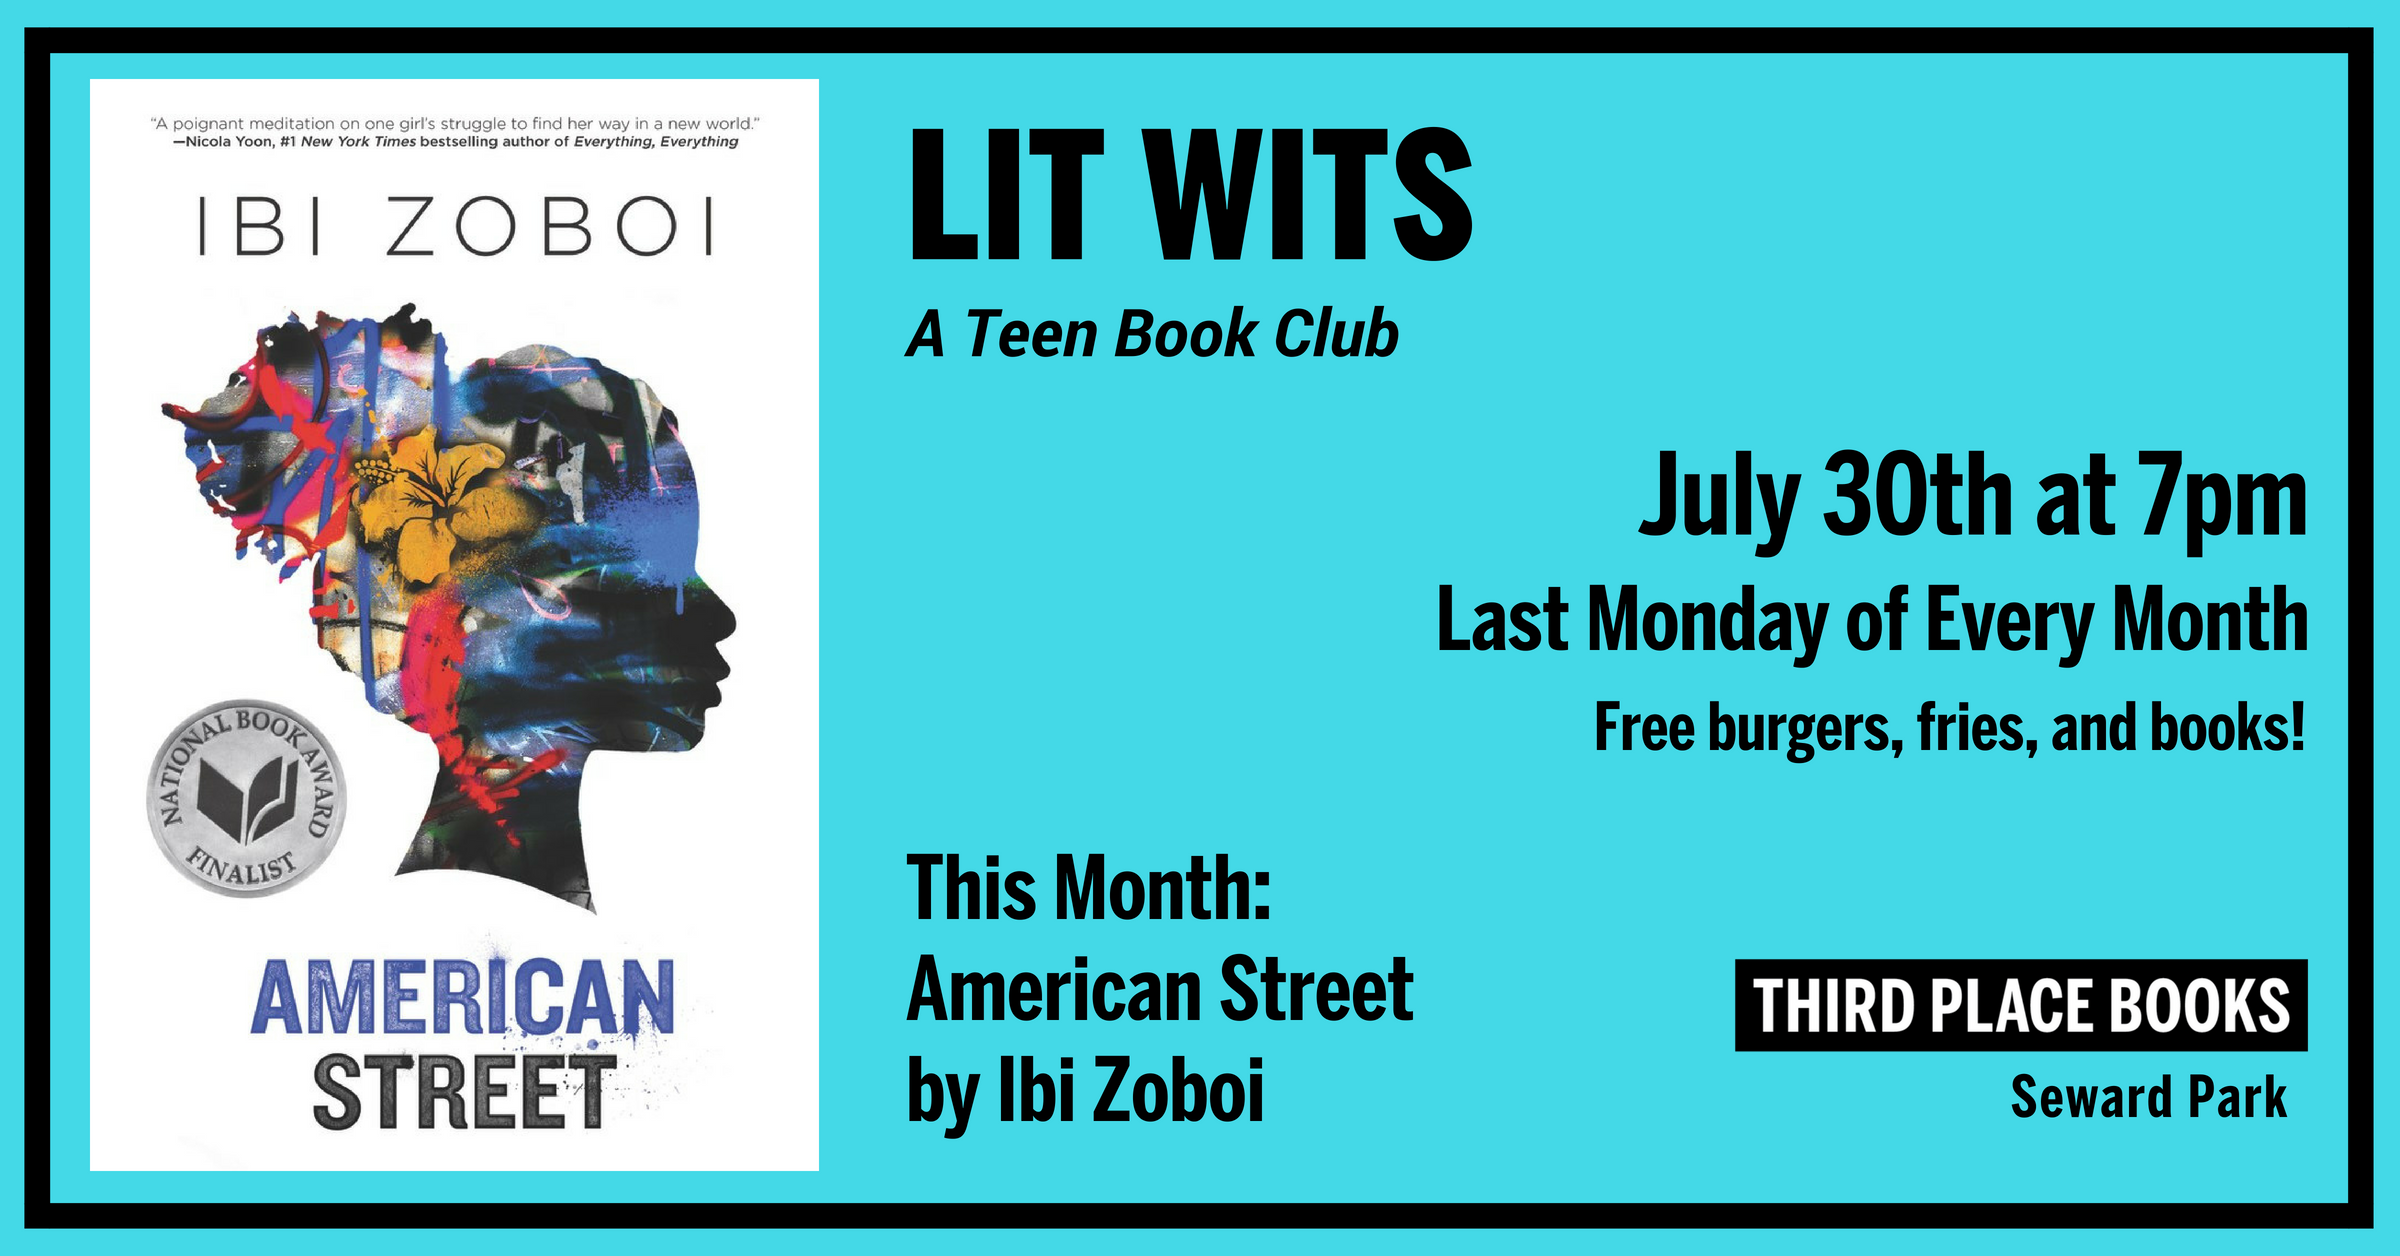 Lit Wits: A Teen Book Club discussing American Street by Ibi Zoboi on Monday, July 30th at 7pm